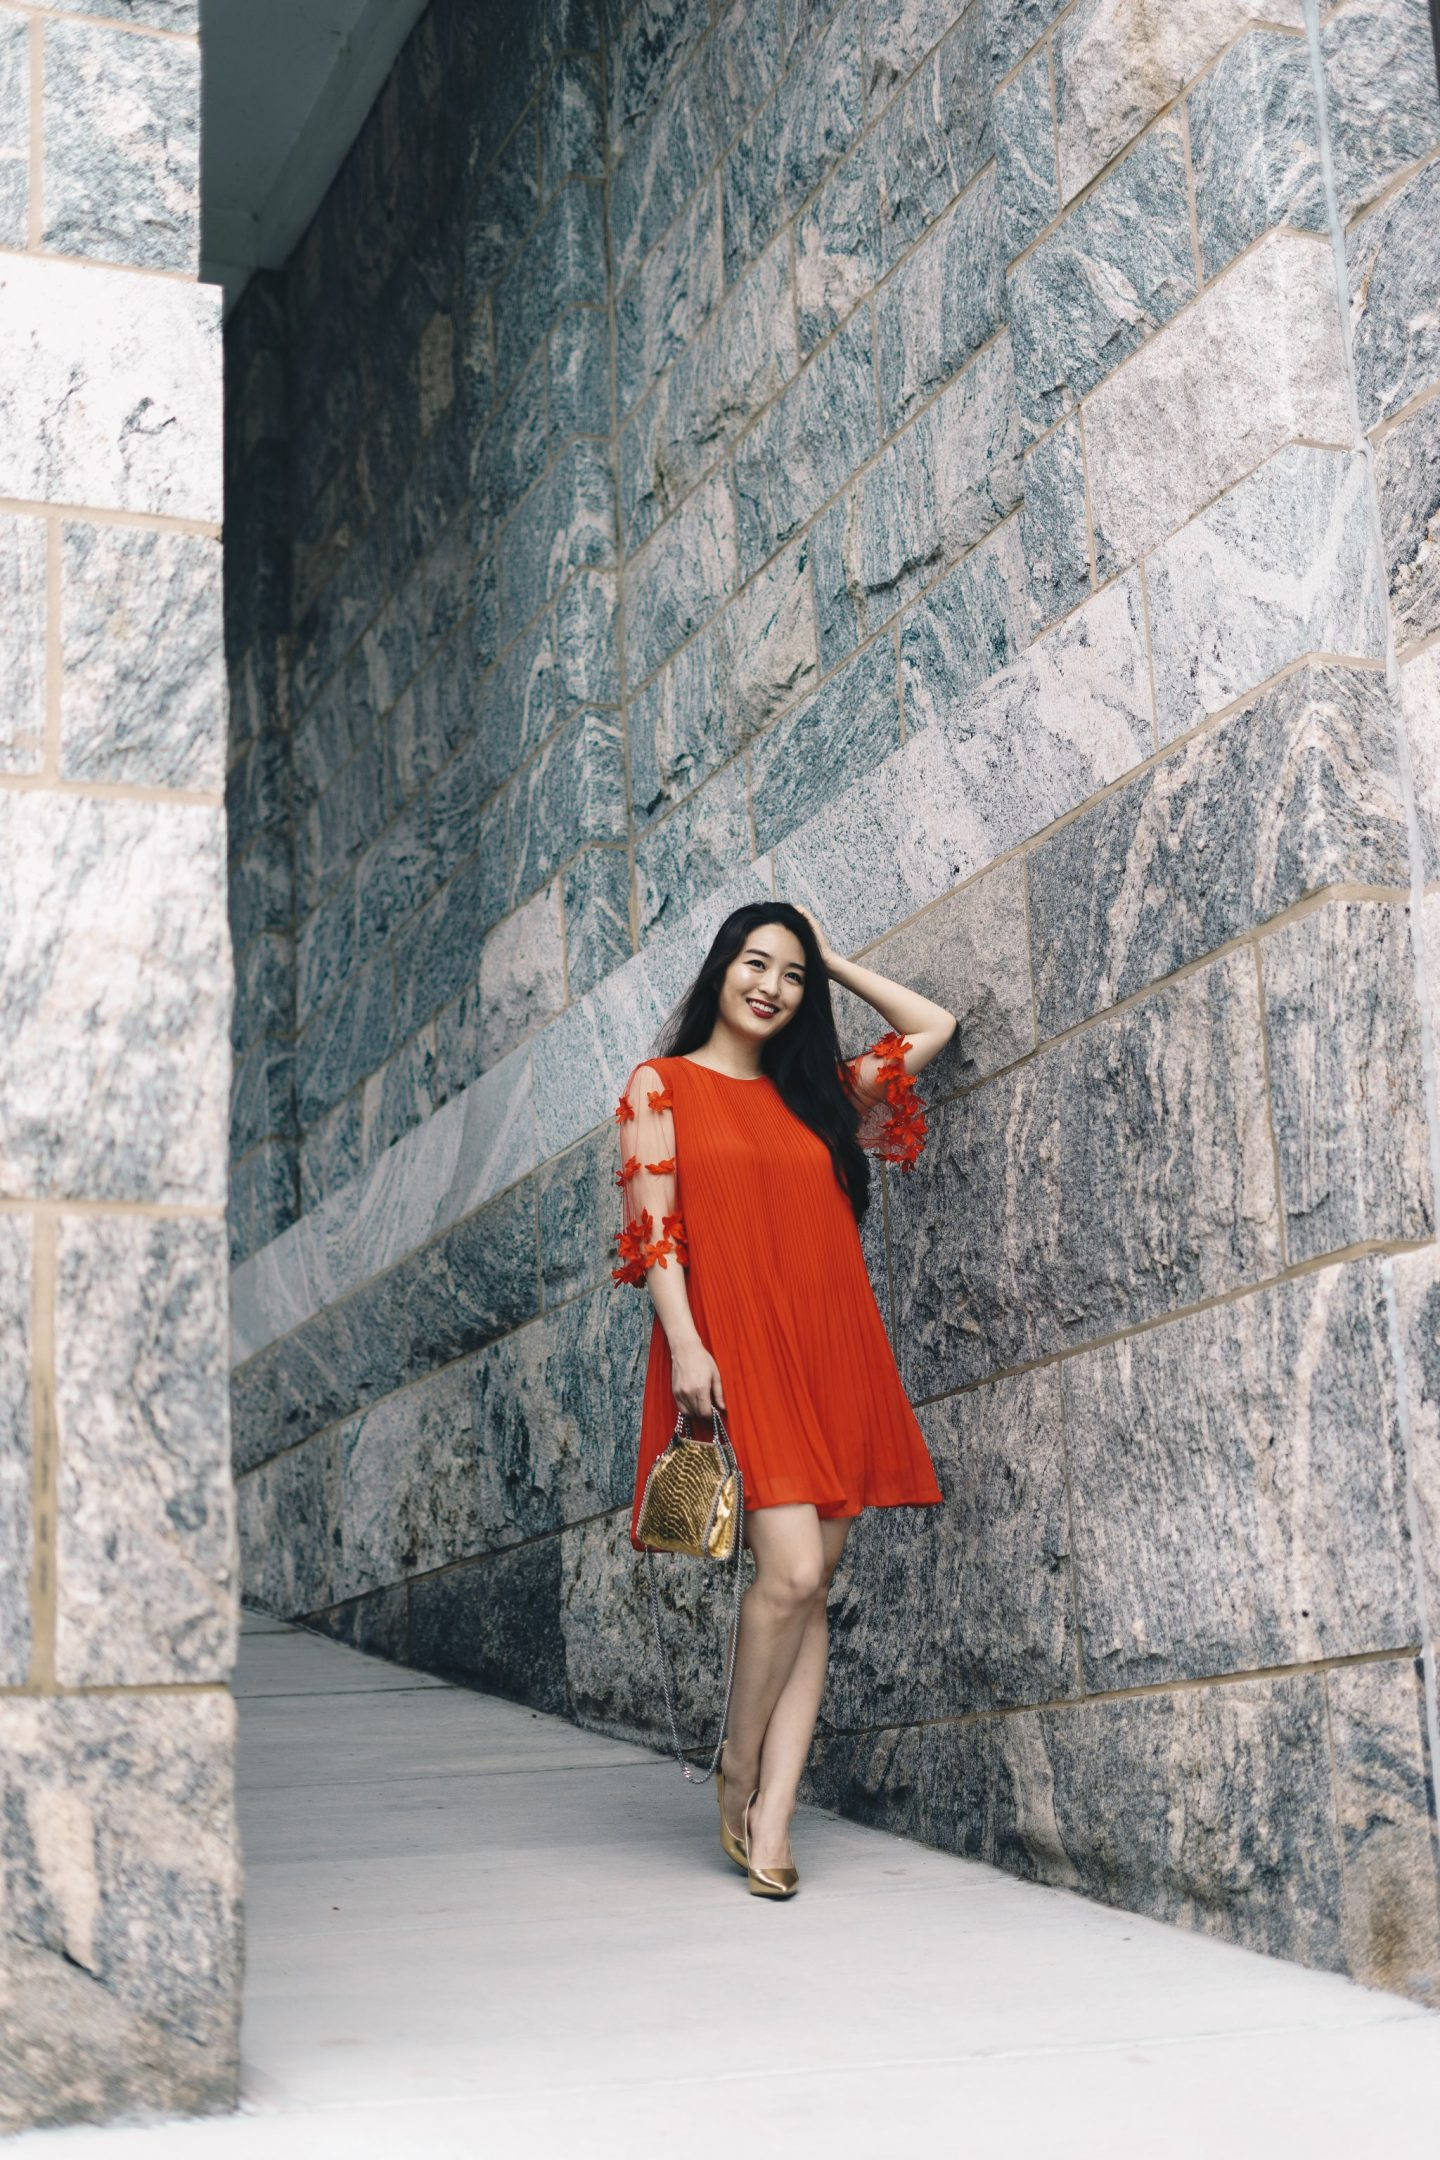 fashion blogger models red dress